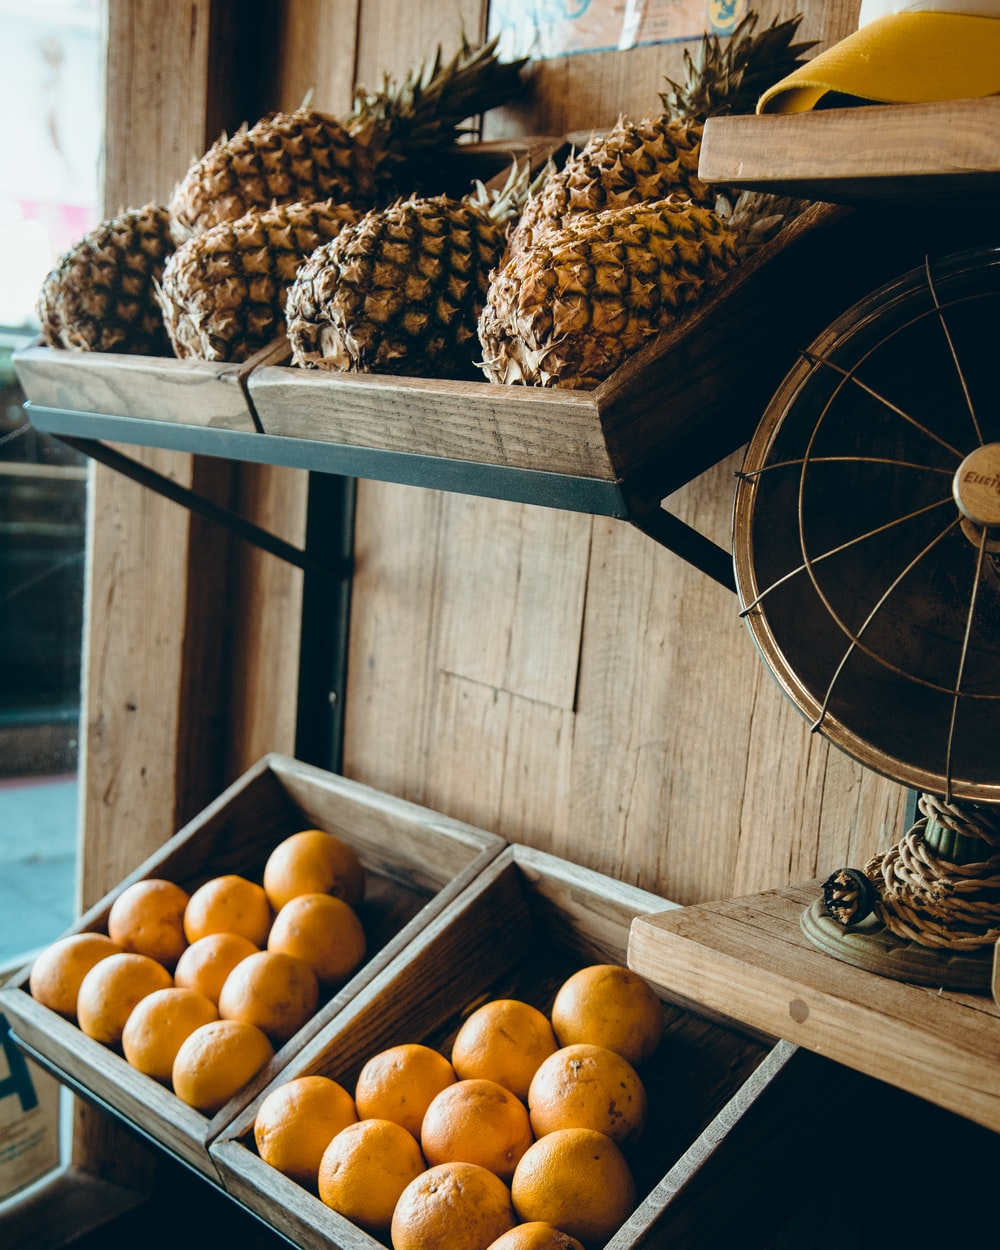 pineapple and orange fruits on brown wooden rack